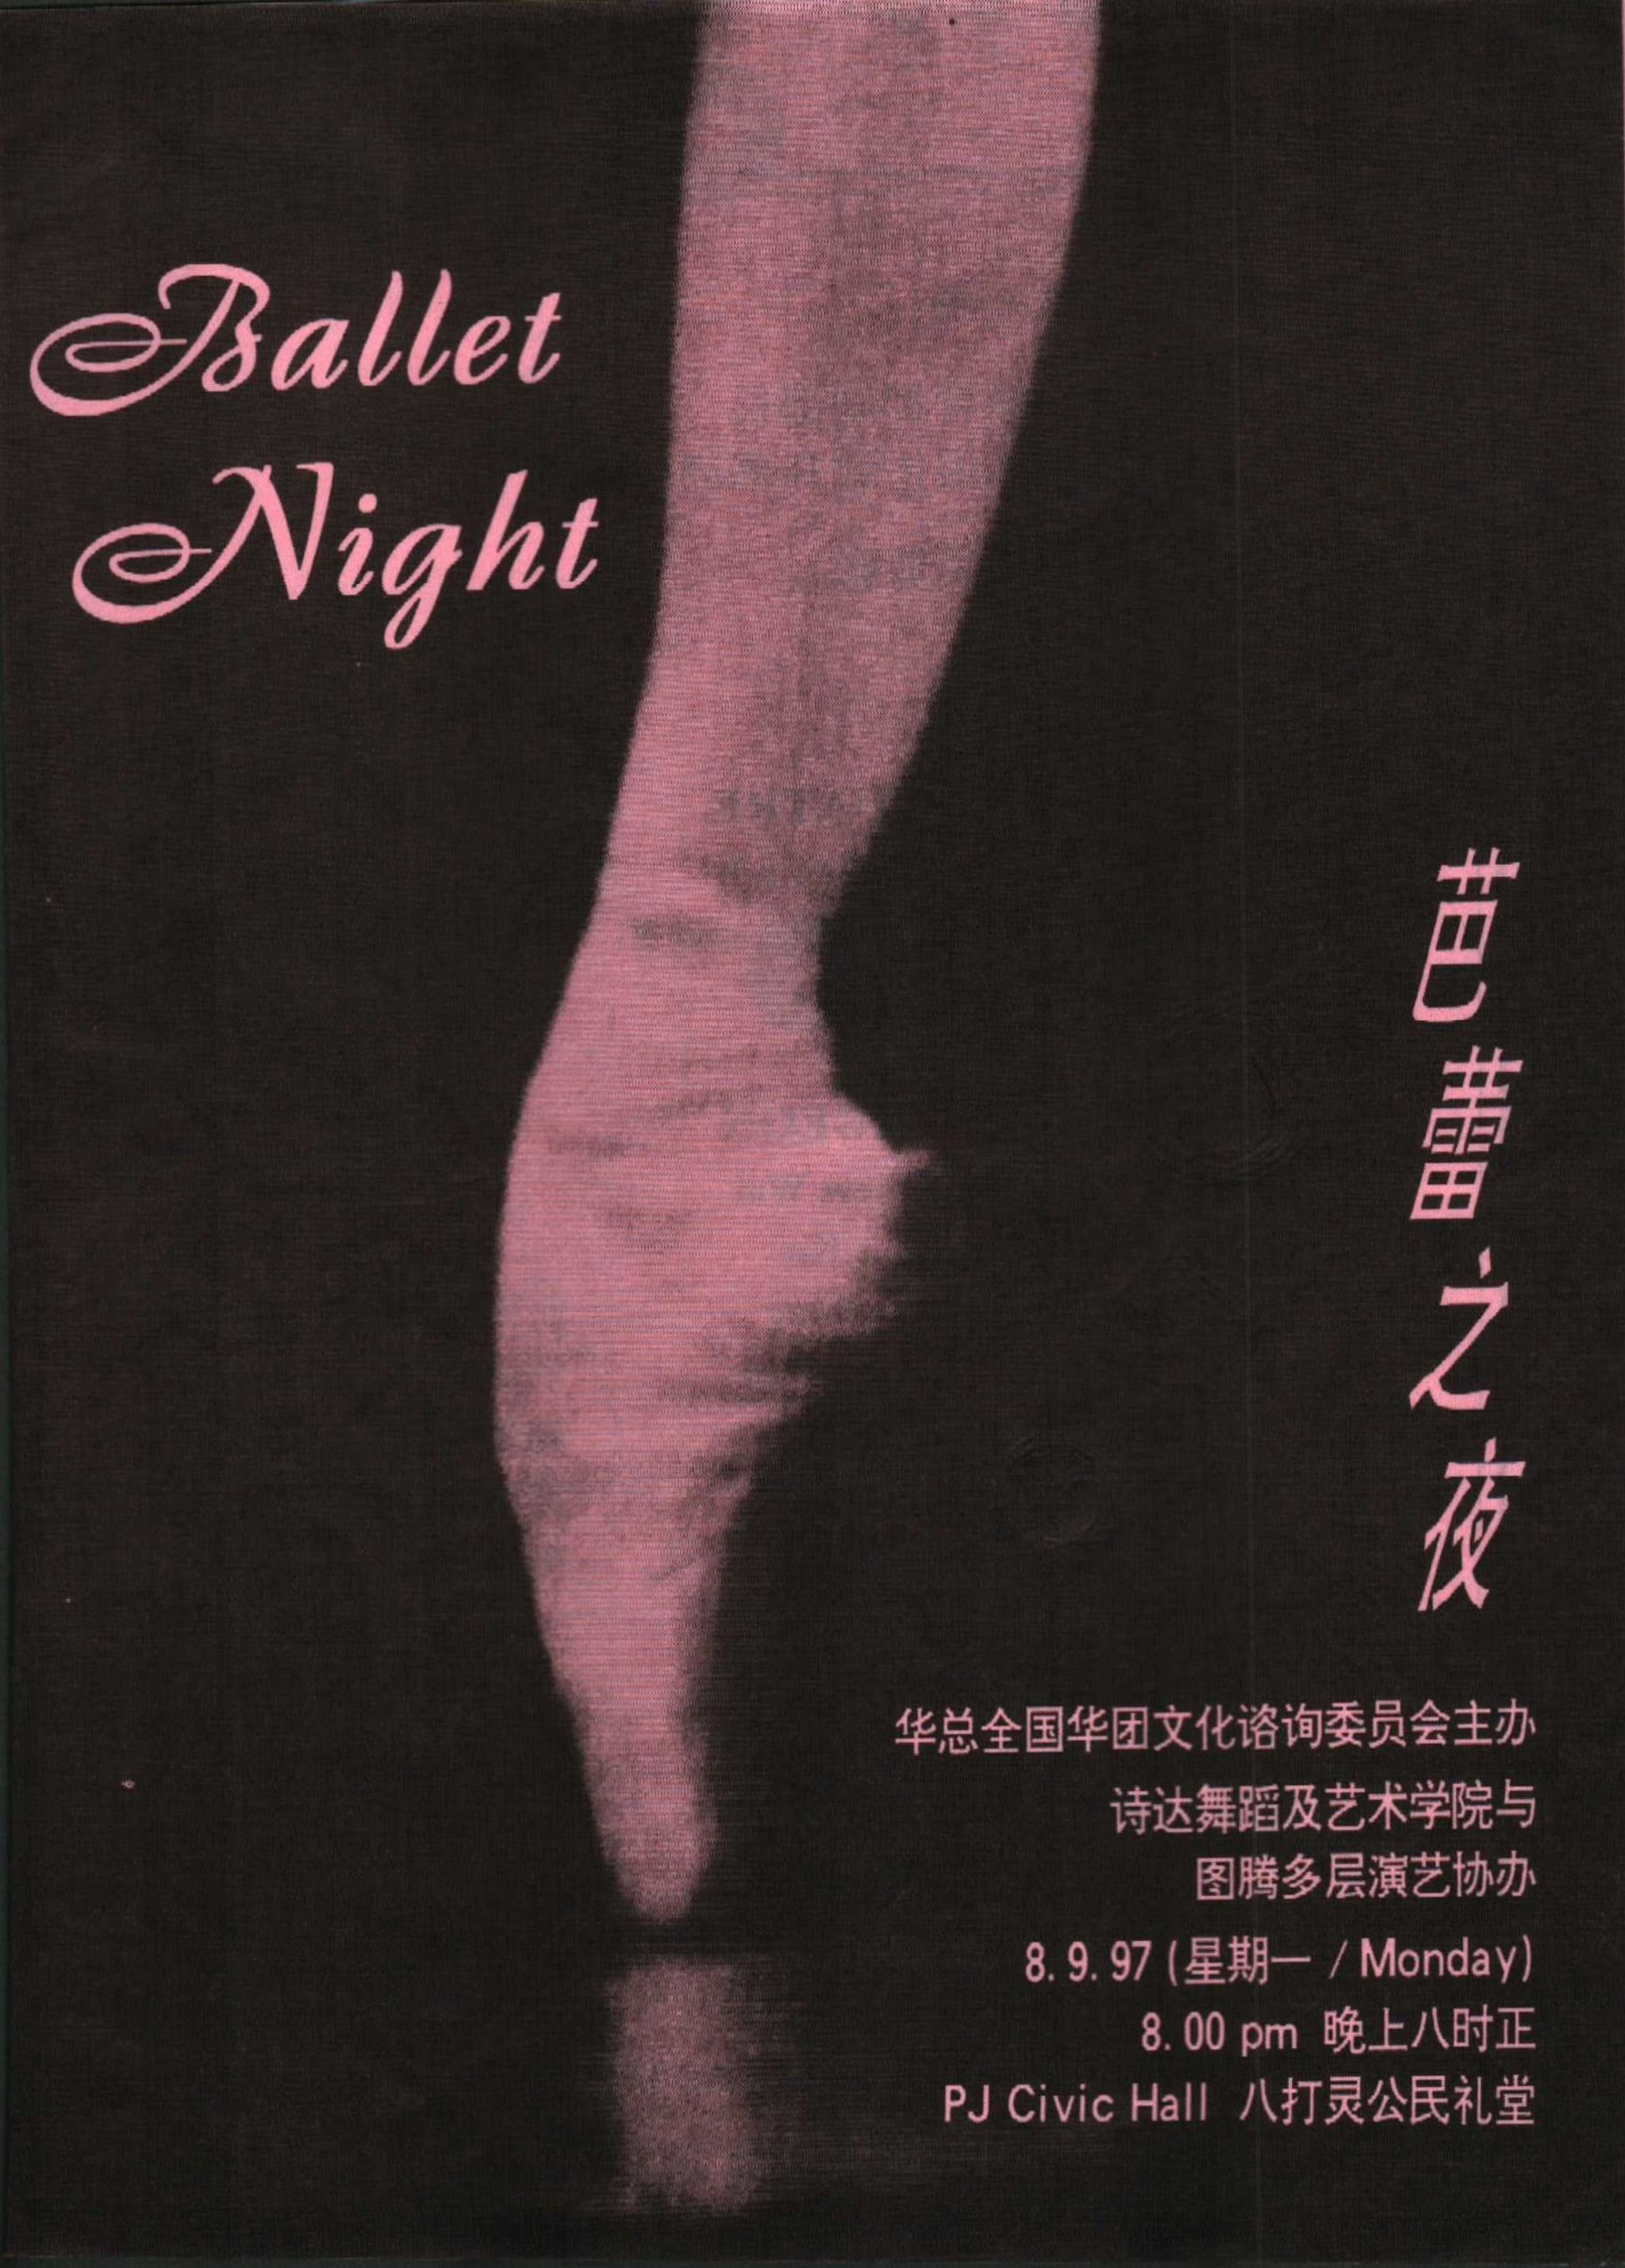 1997 Ballet Night Cover